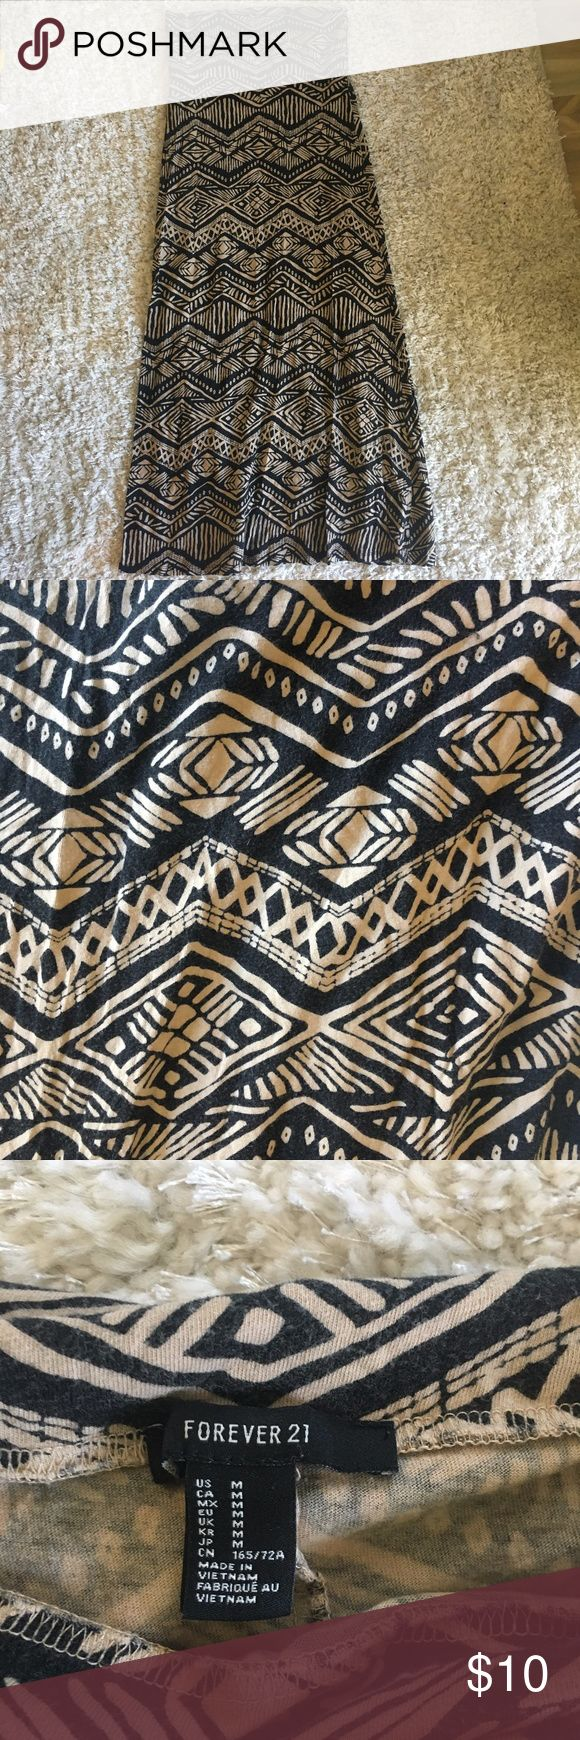 "F21 Black and Tan Tribal Print Maxi Skirt Forever 21 black and tan tribal print cotton maxi skirt with foldover waist  Approximate measurements: waist: 15"" laid flat, 37.5"" long (with waist folded down) Forever 21 Skirts Maxi"